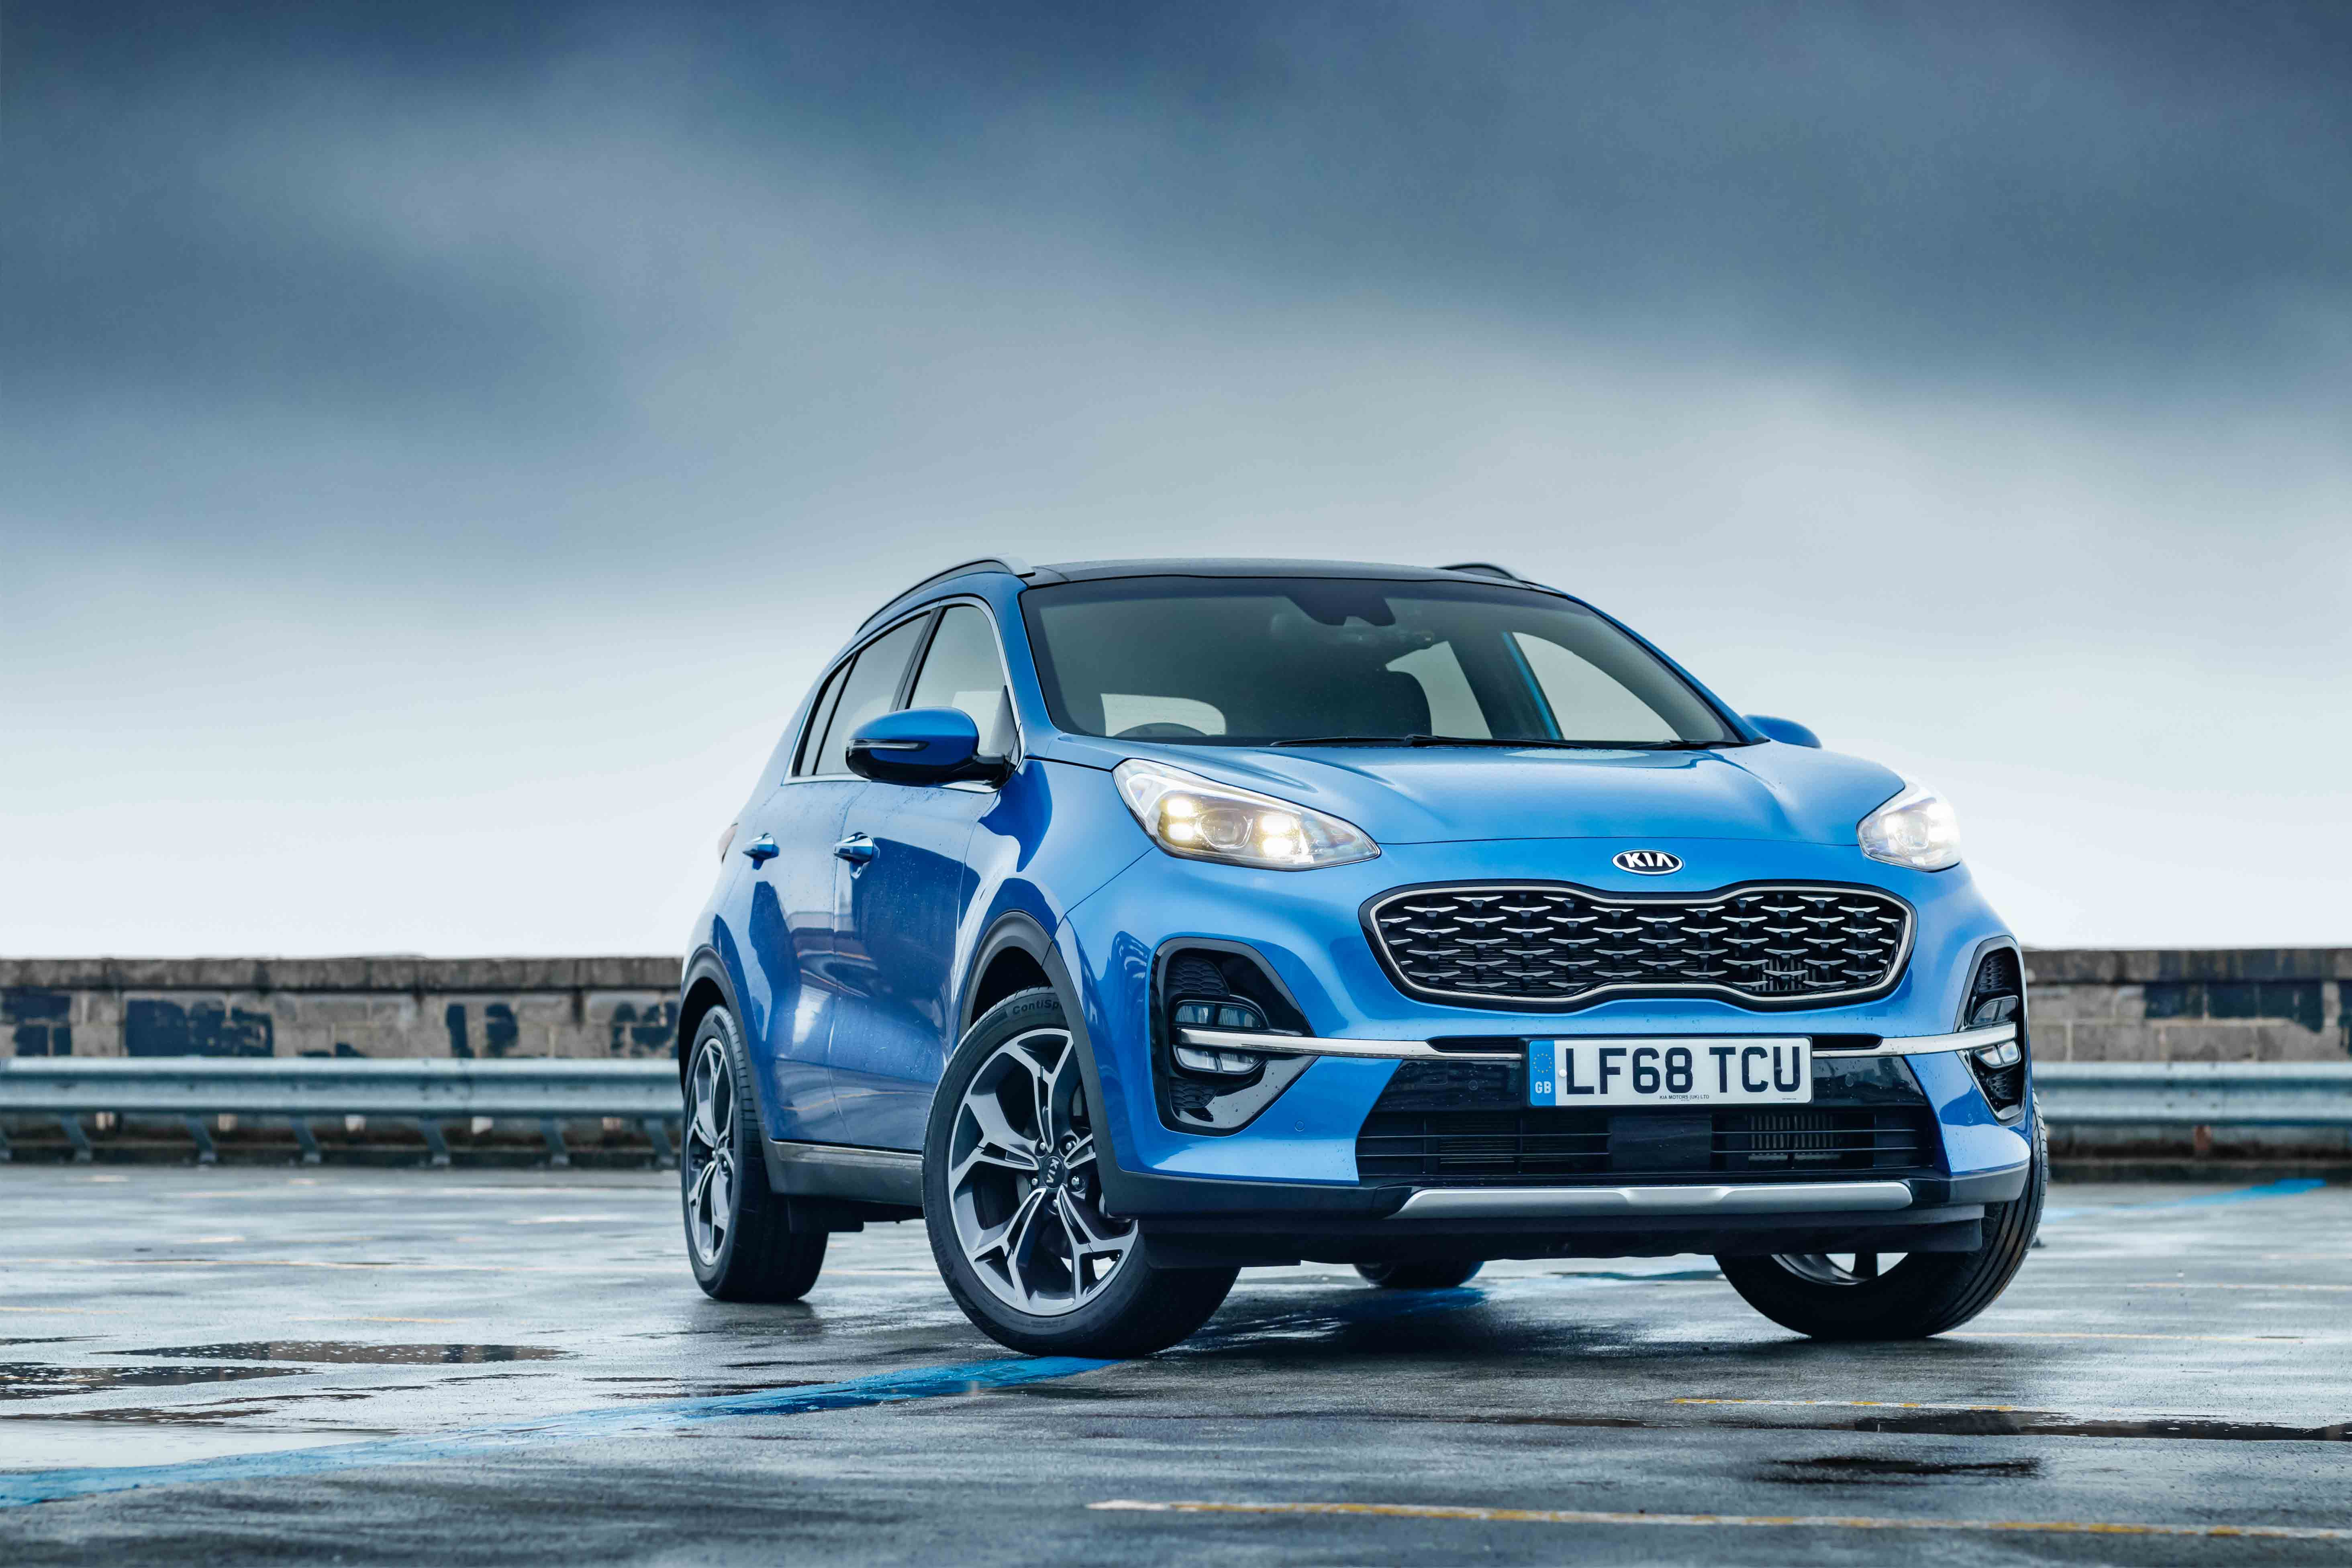 2019 Kia Sportage: Upgraded Design And New Hybrid System >> Kia Sportage Gt Line S 2 0 Crdi 48v Review Car Indicators